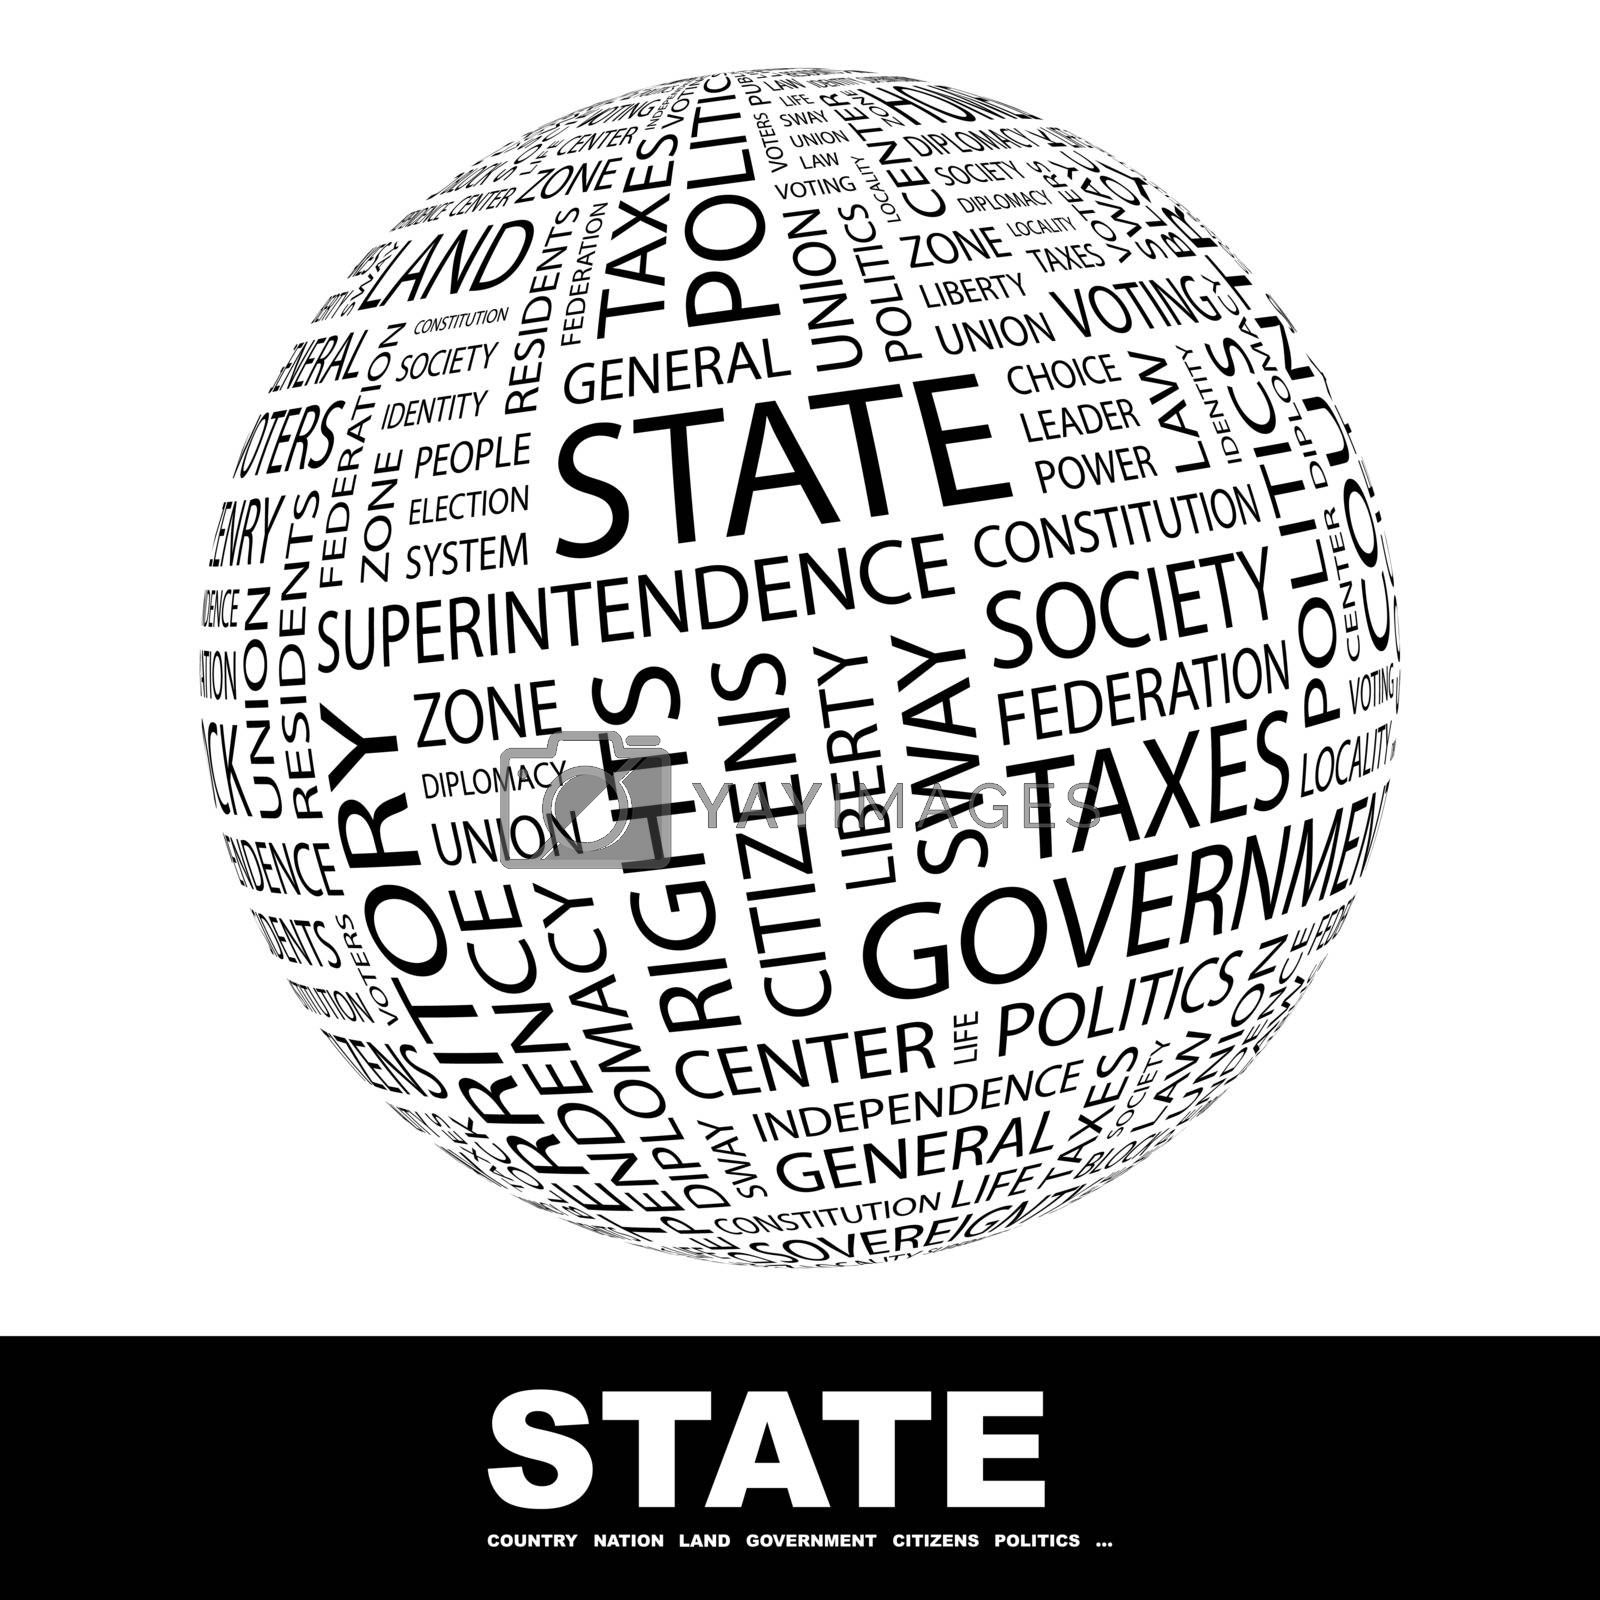 STATE. Concept illustration. Graphic tag collection. Wordcloud collage.